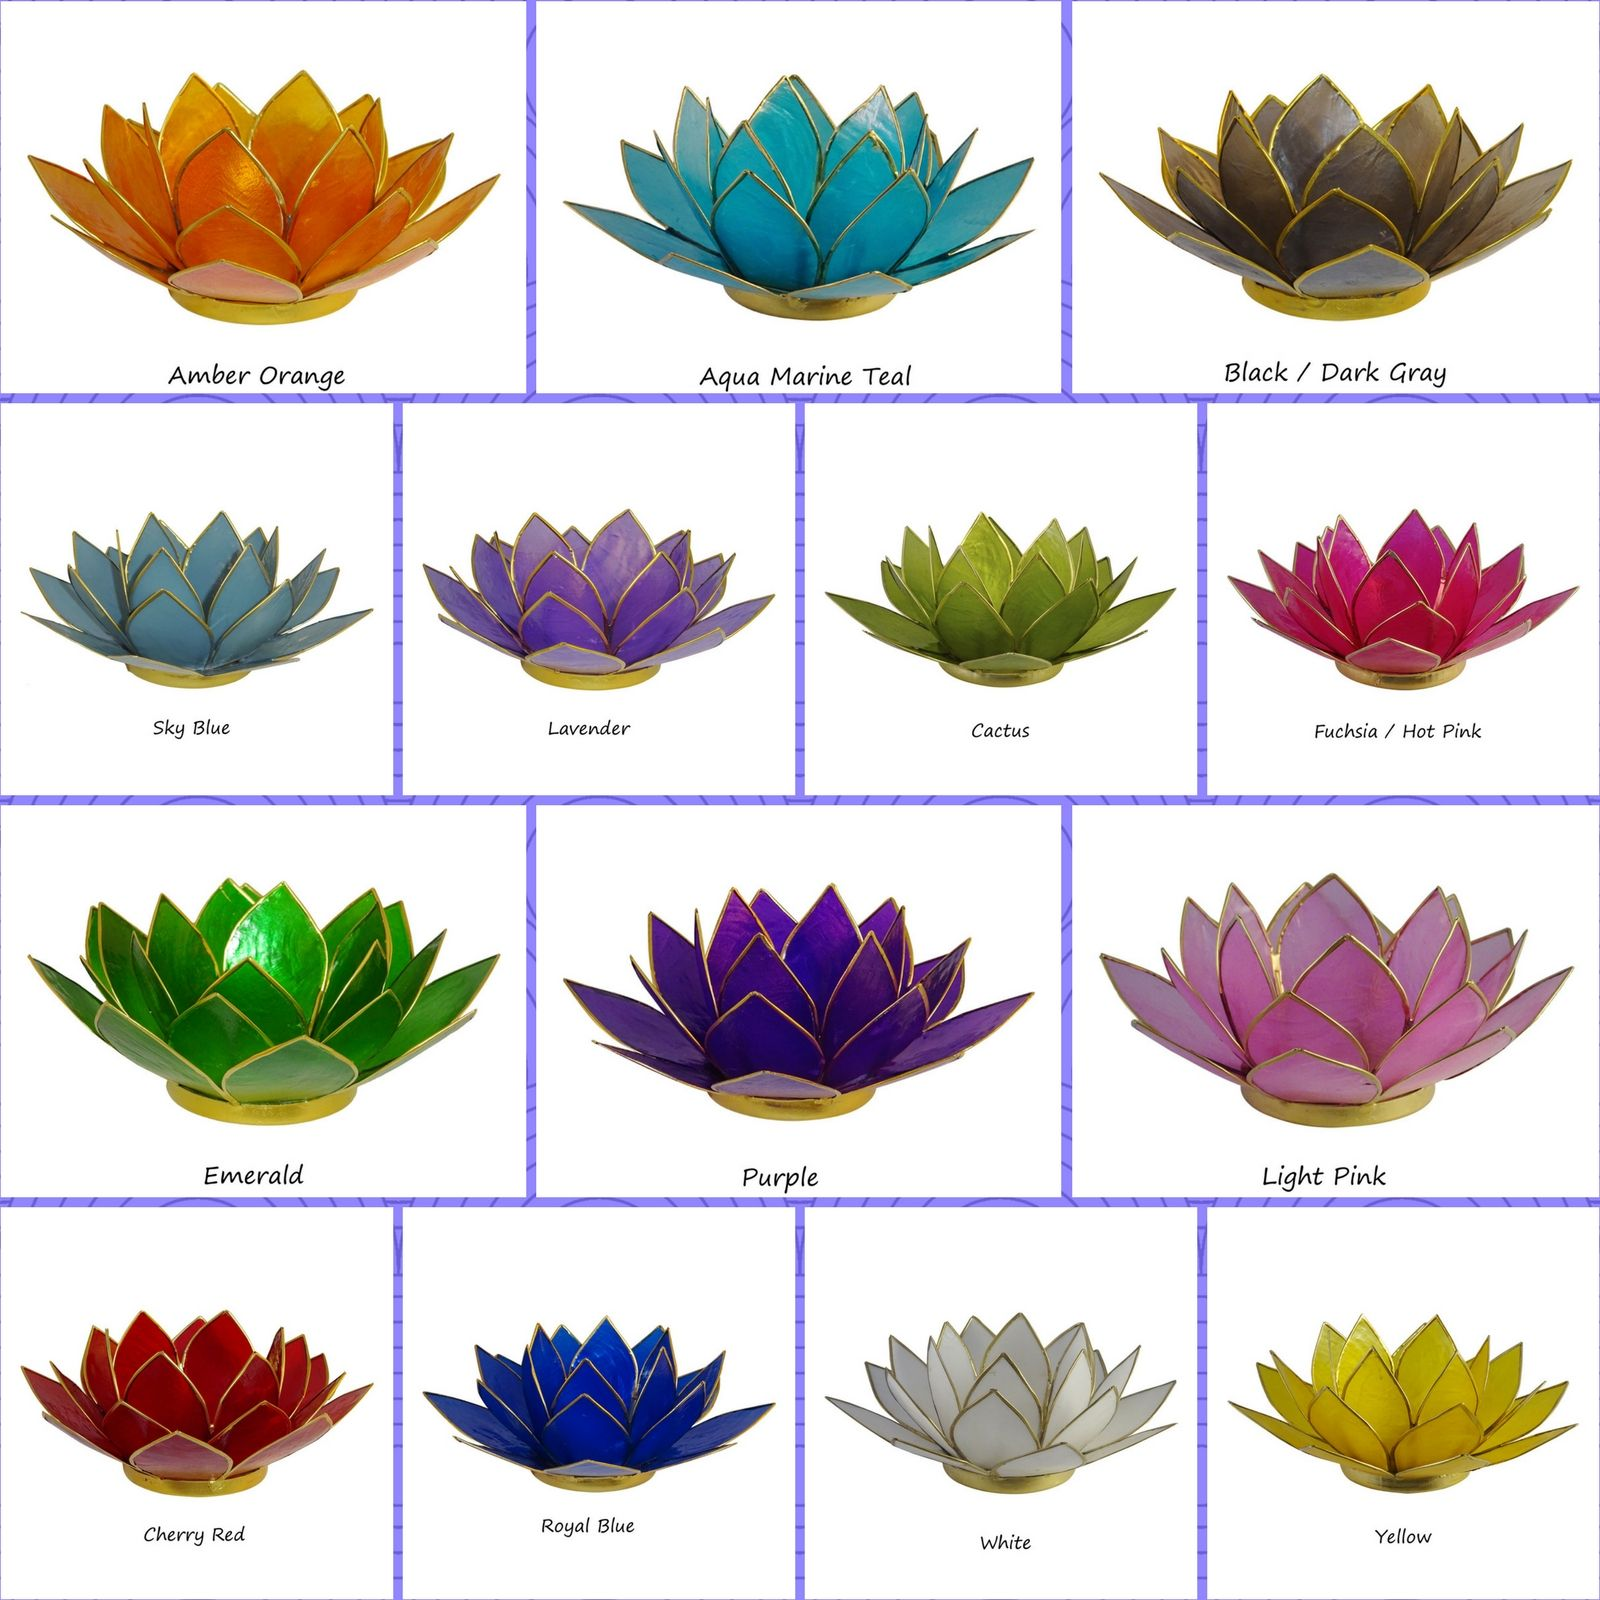 New colors lotus tea light candle holders the crabby nook they are finally in and wow are they pretty the colors are vibrant and they match all of your decor in every room try them now mix and match mightylinksfo